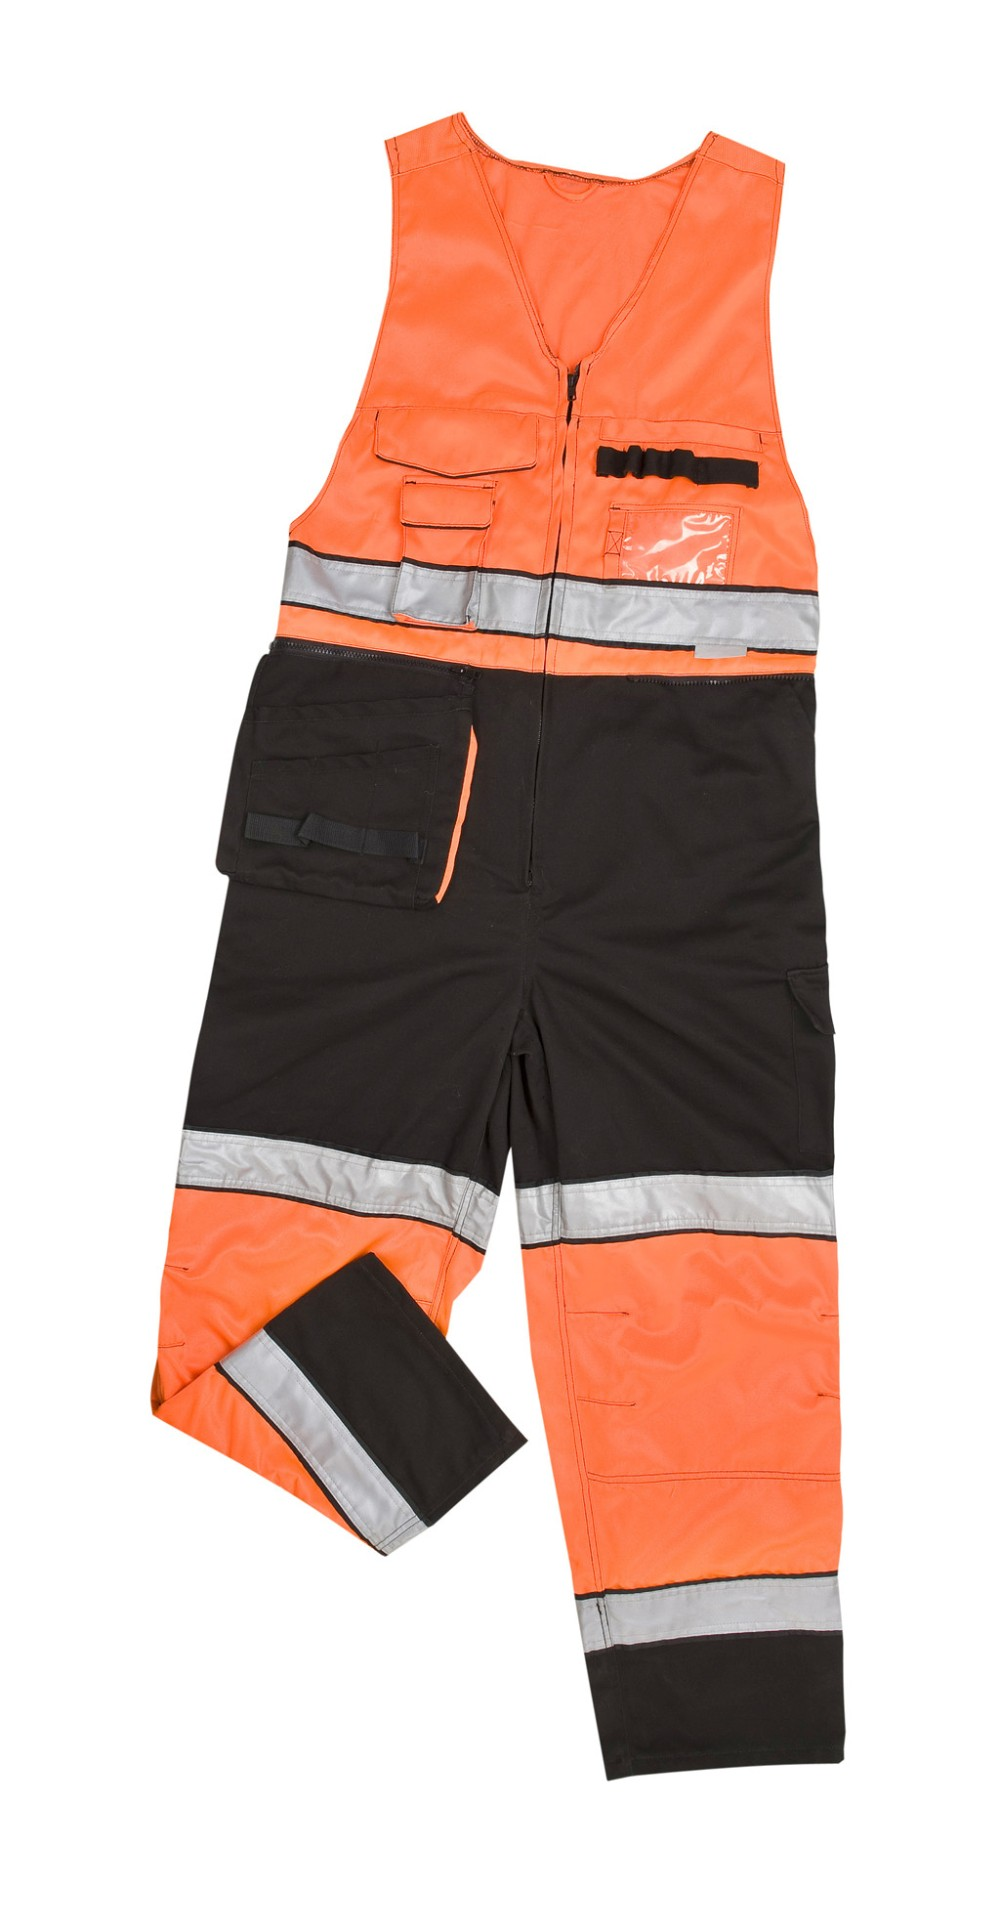 Workers overall uniforms